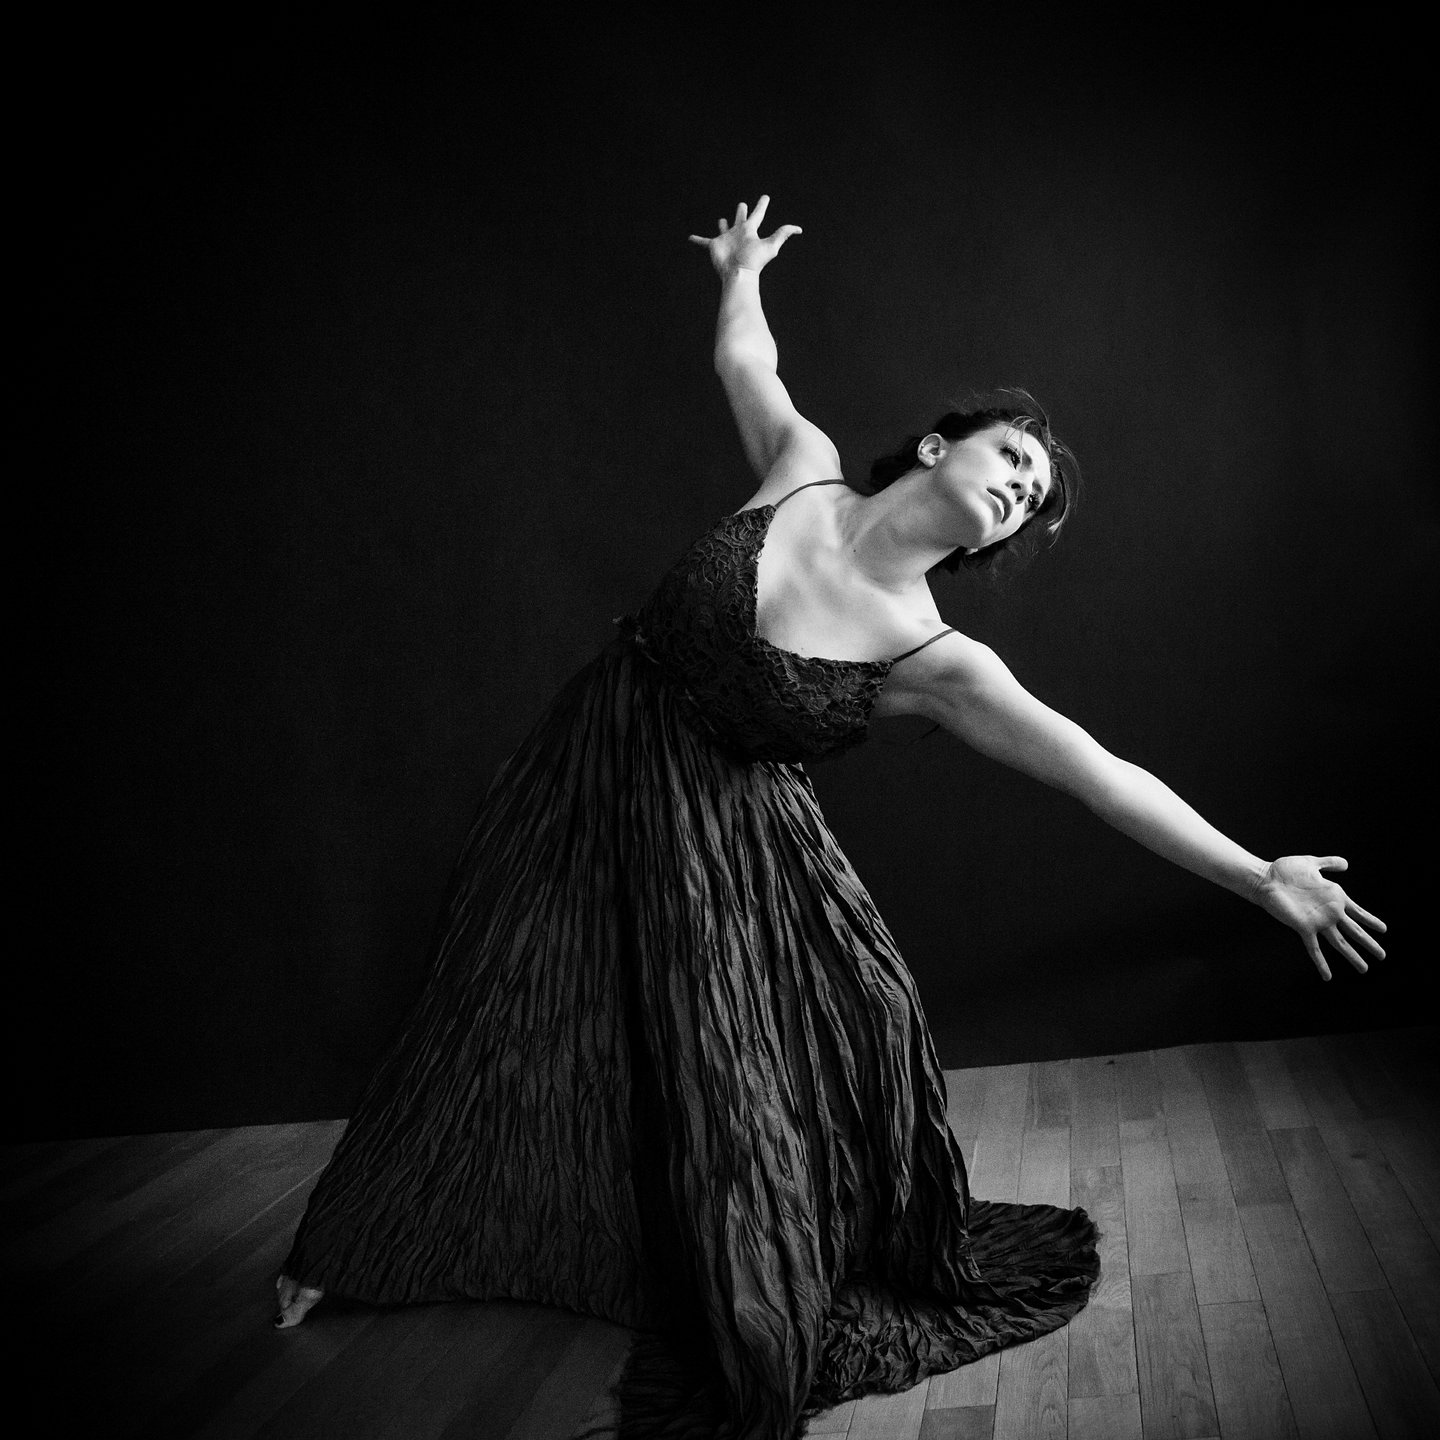 Los Angeles Dance Portrait Photo - Stephanie Abrams - by Tommy Xing Photography 18.jpg